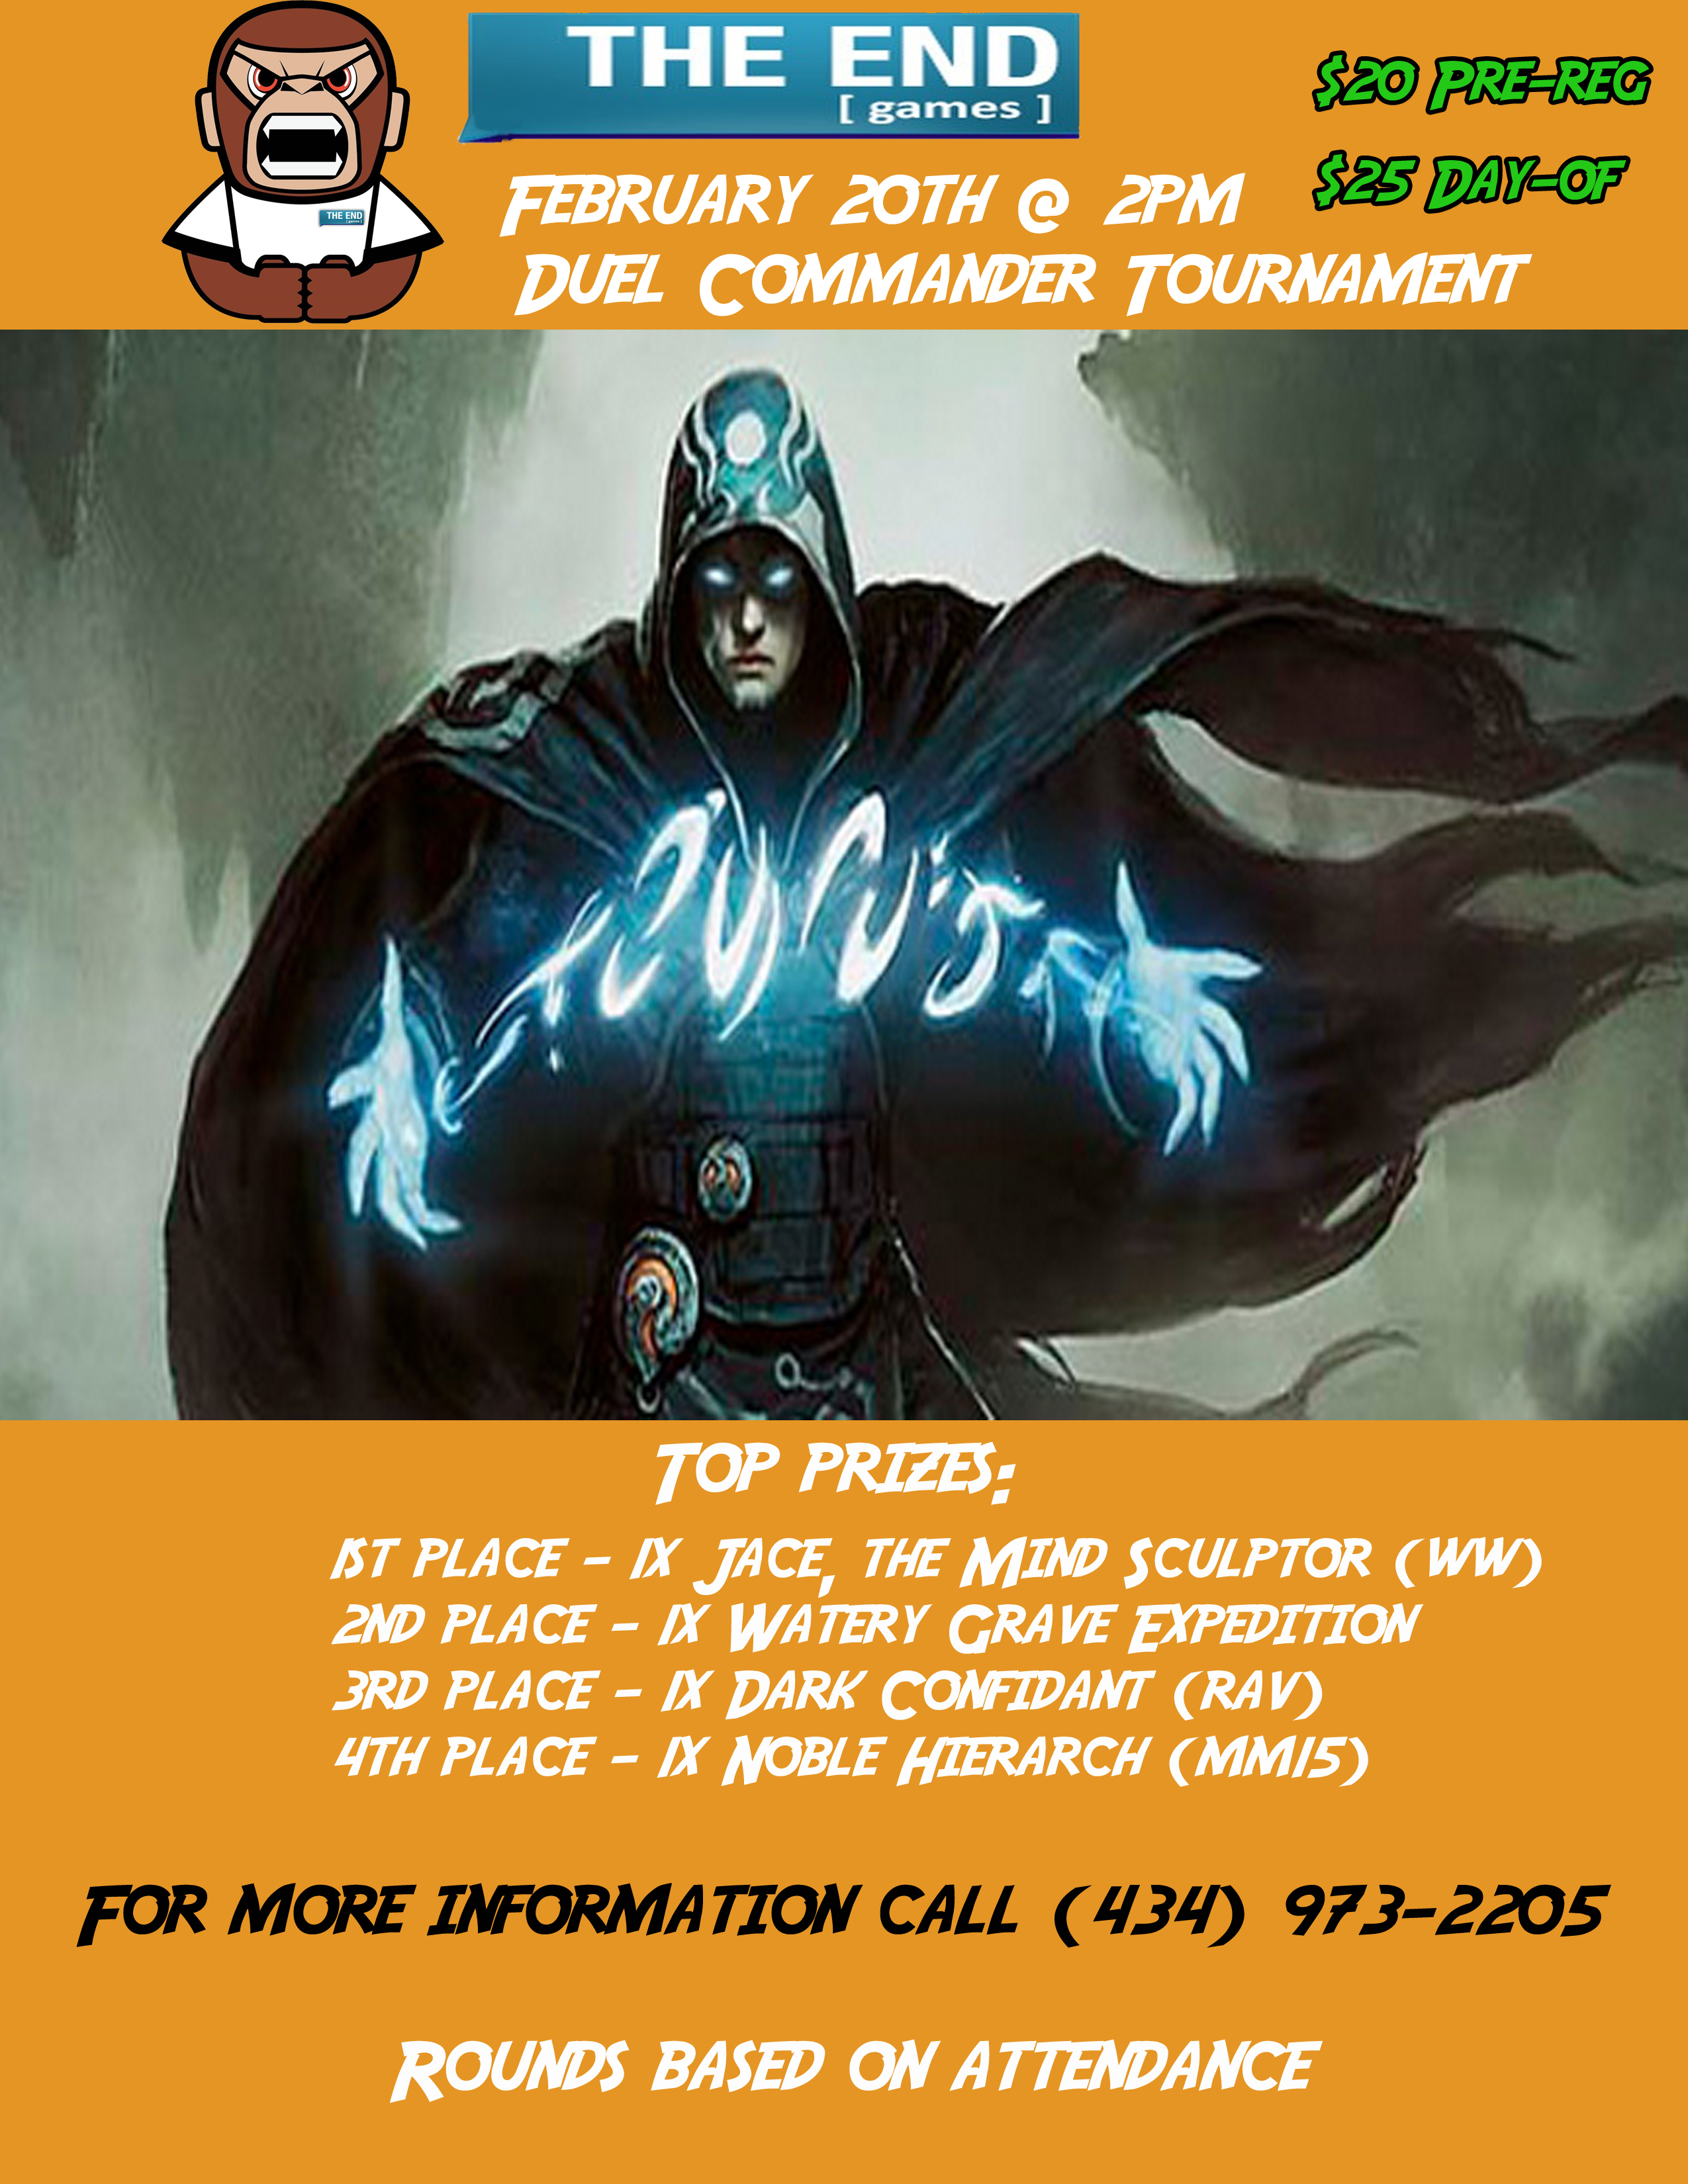 feb 20th Duel Commander Flier copy